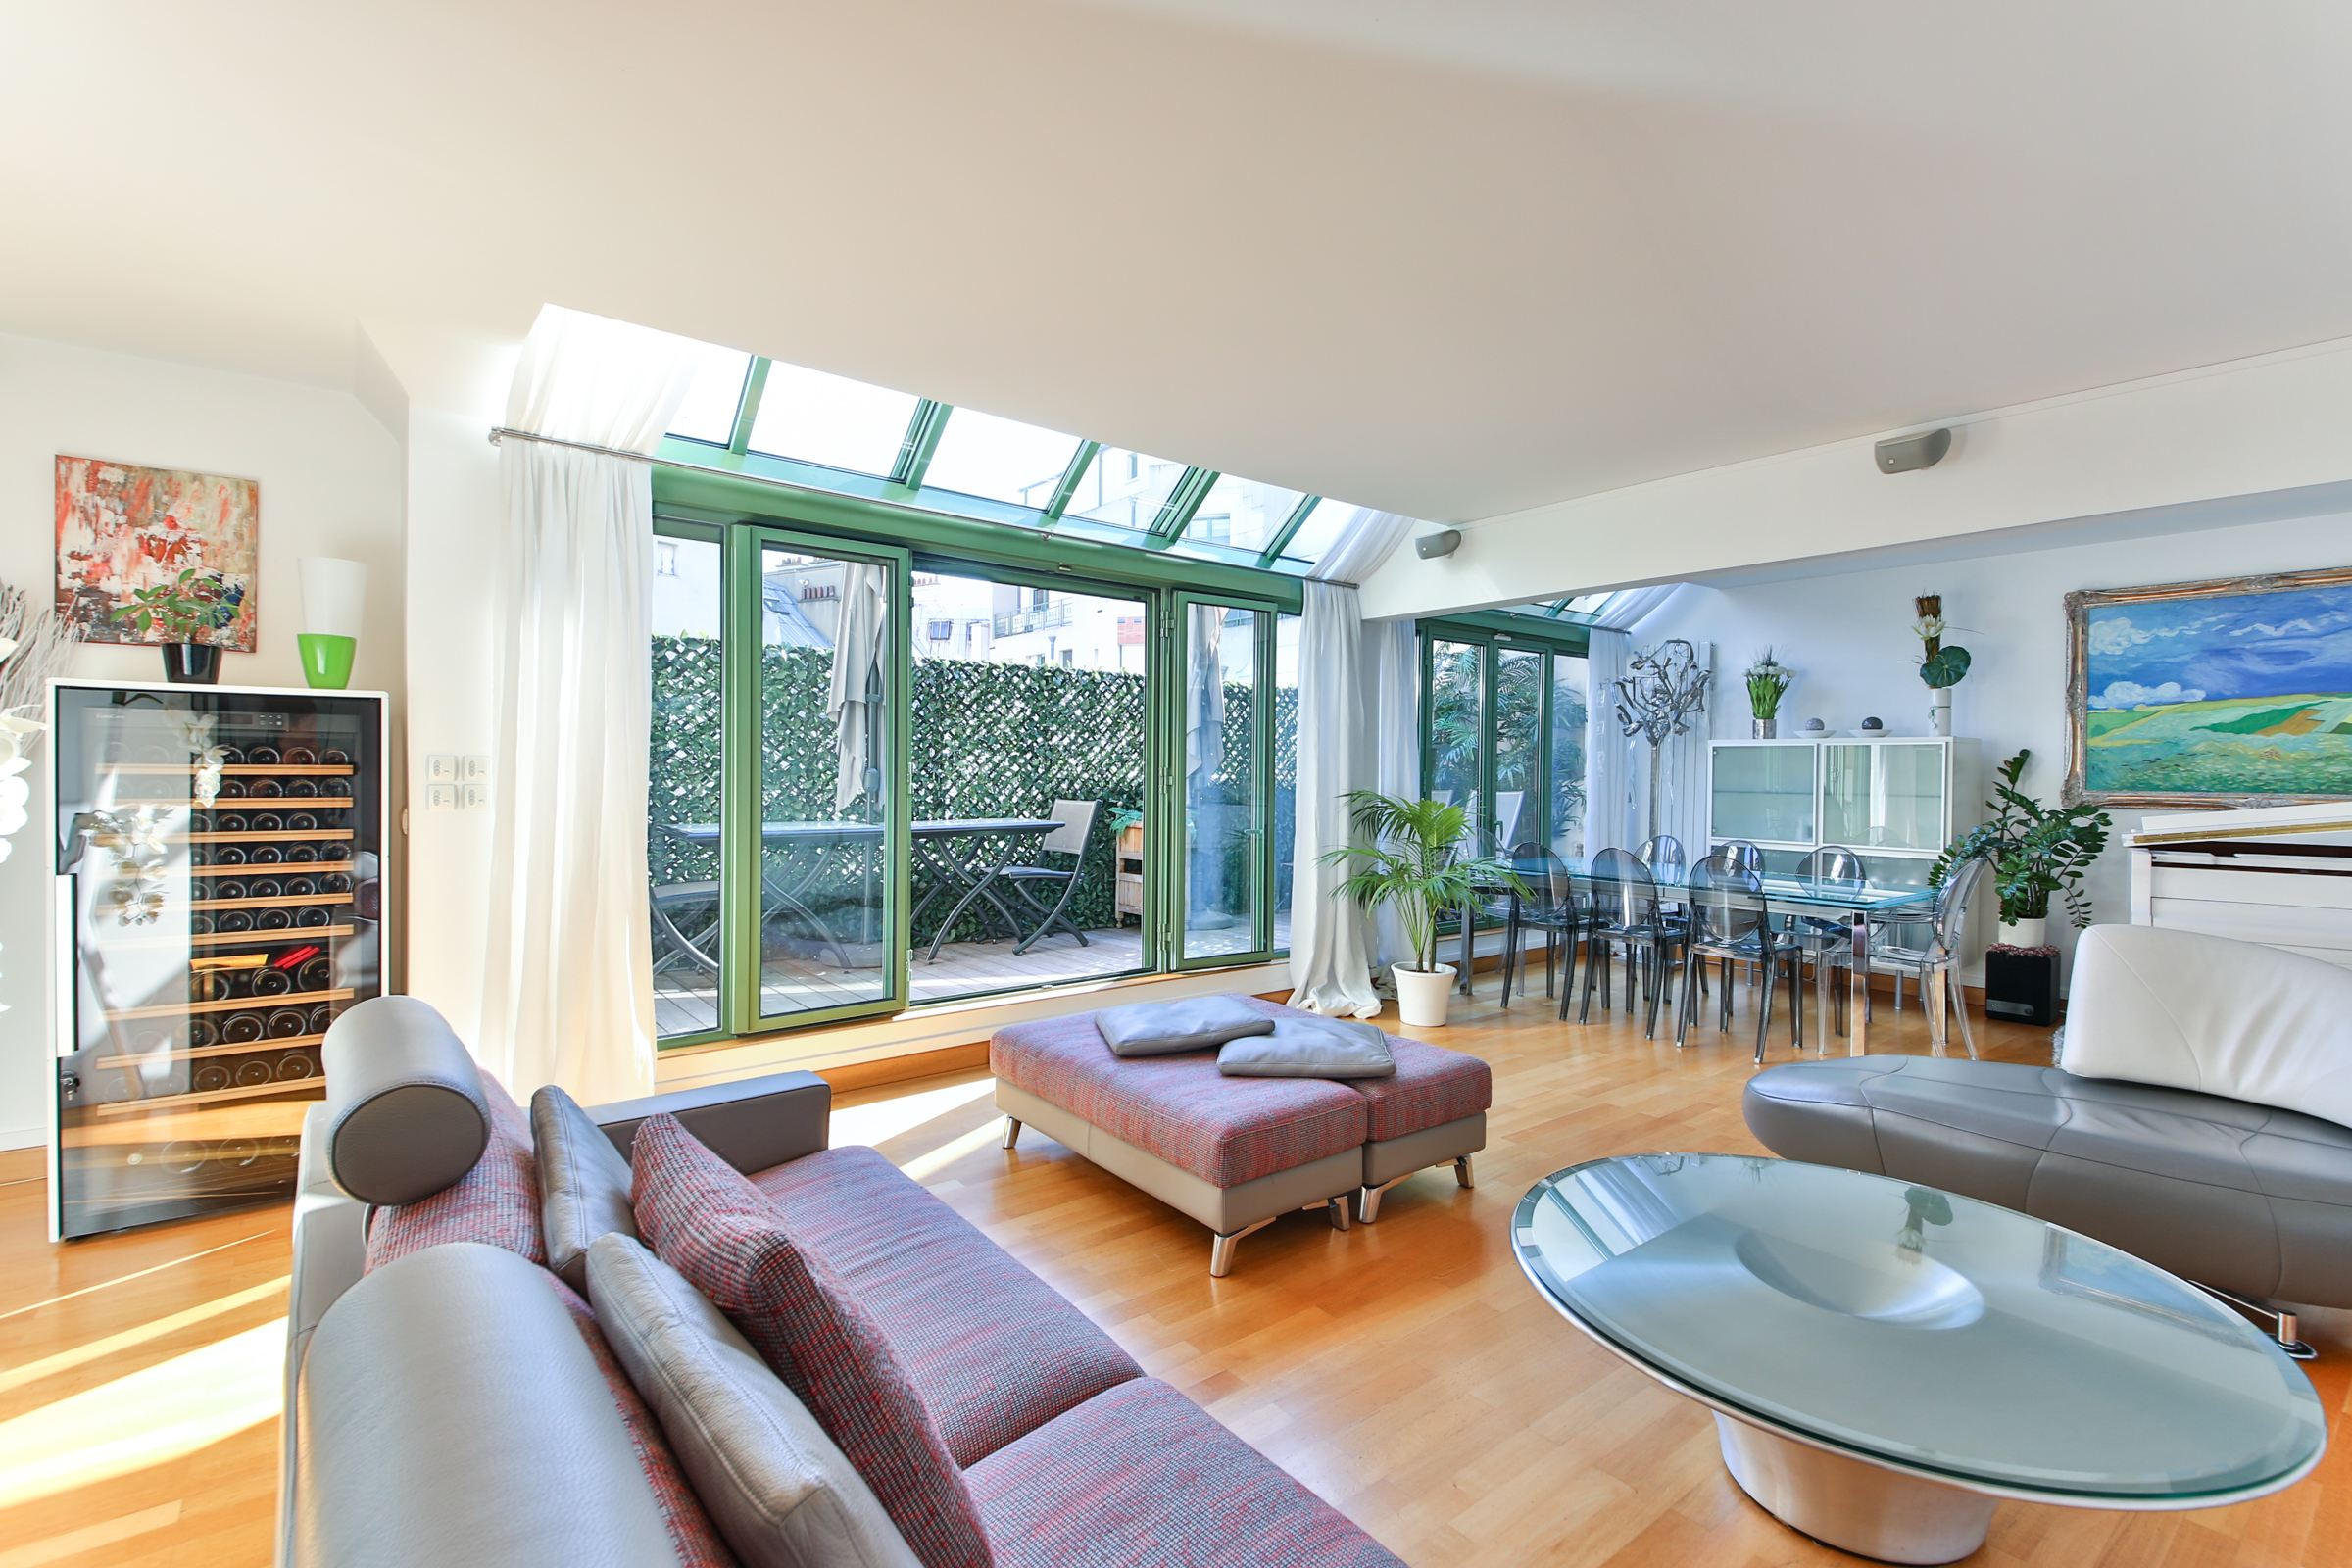 Property For Sale at Paris 17 - Parc Monceau. Apartment 136 sq.m.. Unoverlooked terrace